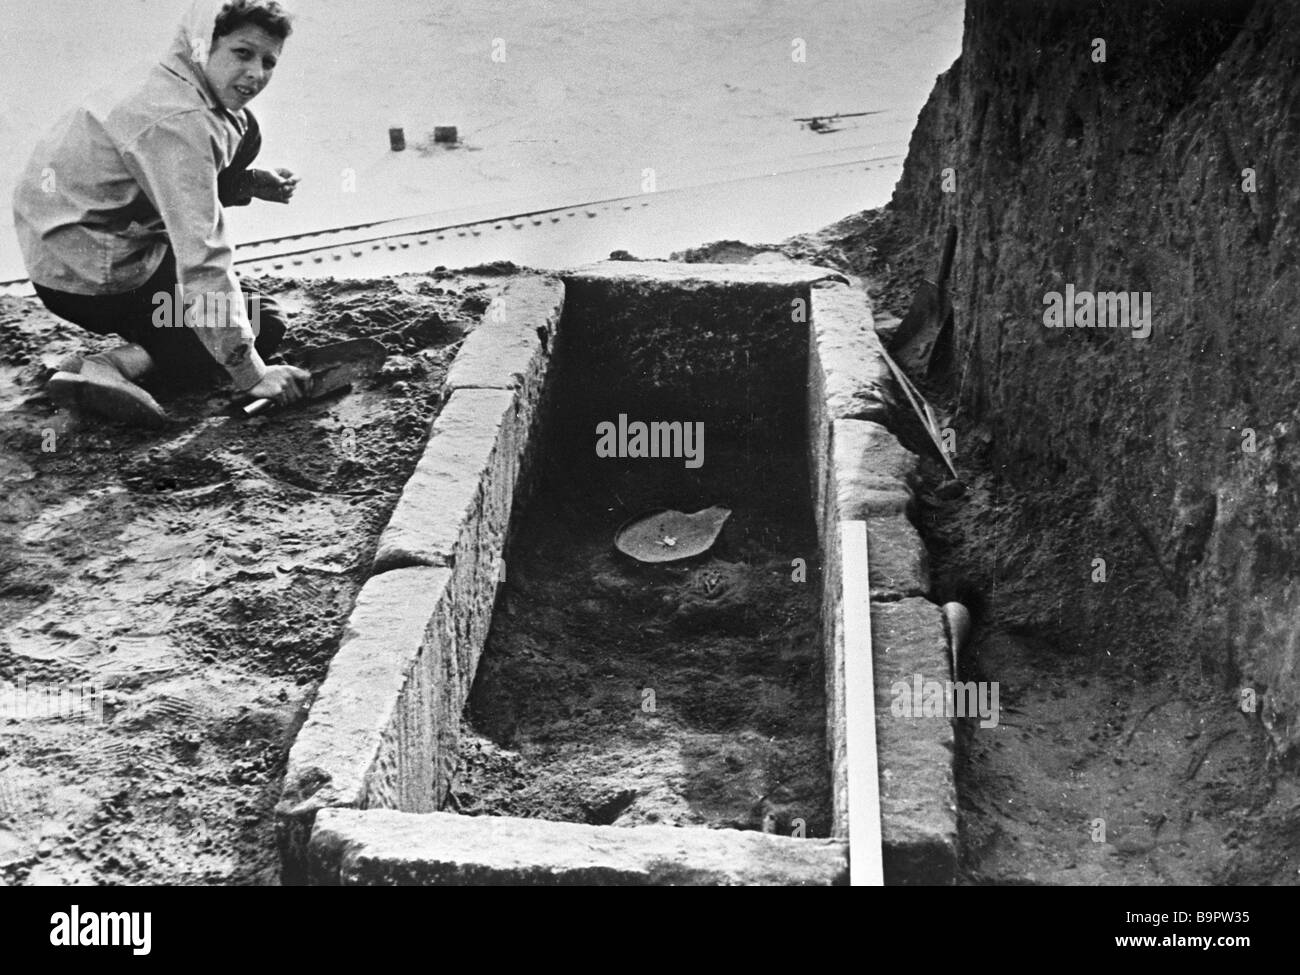 Cleaning up a 2nd century BC underground stone tomb - Stock Image